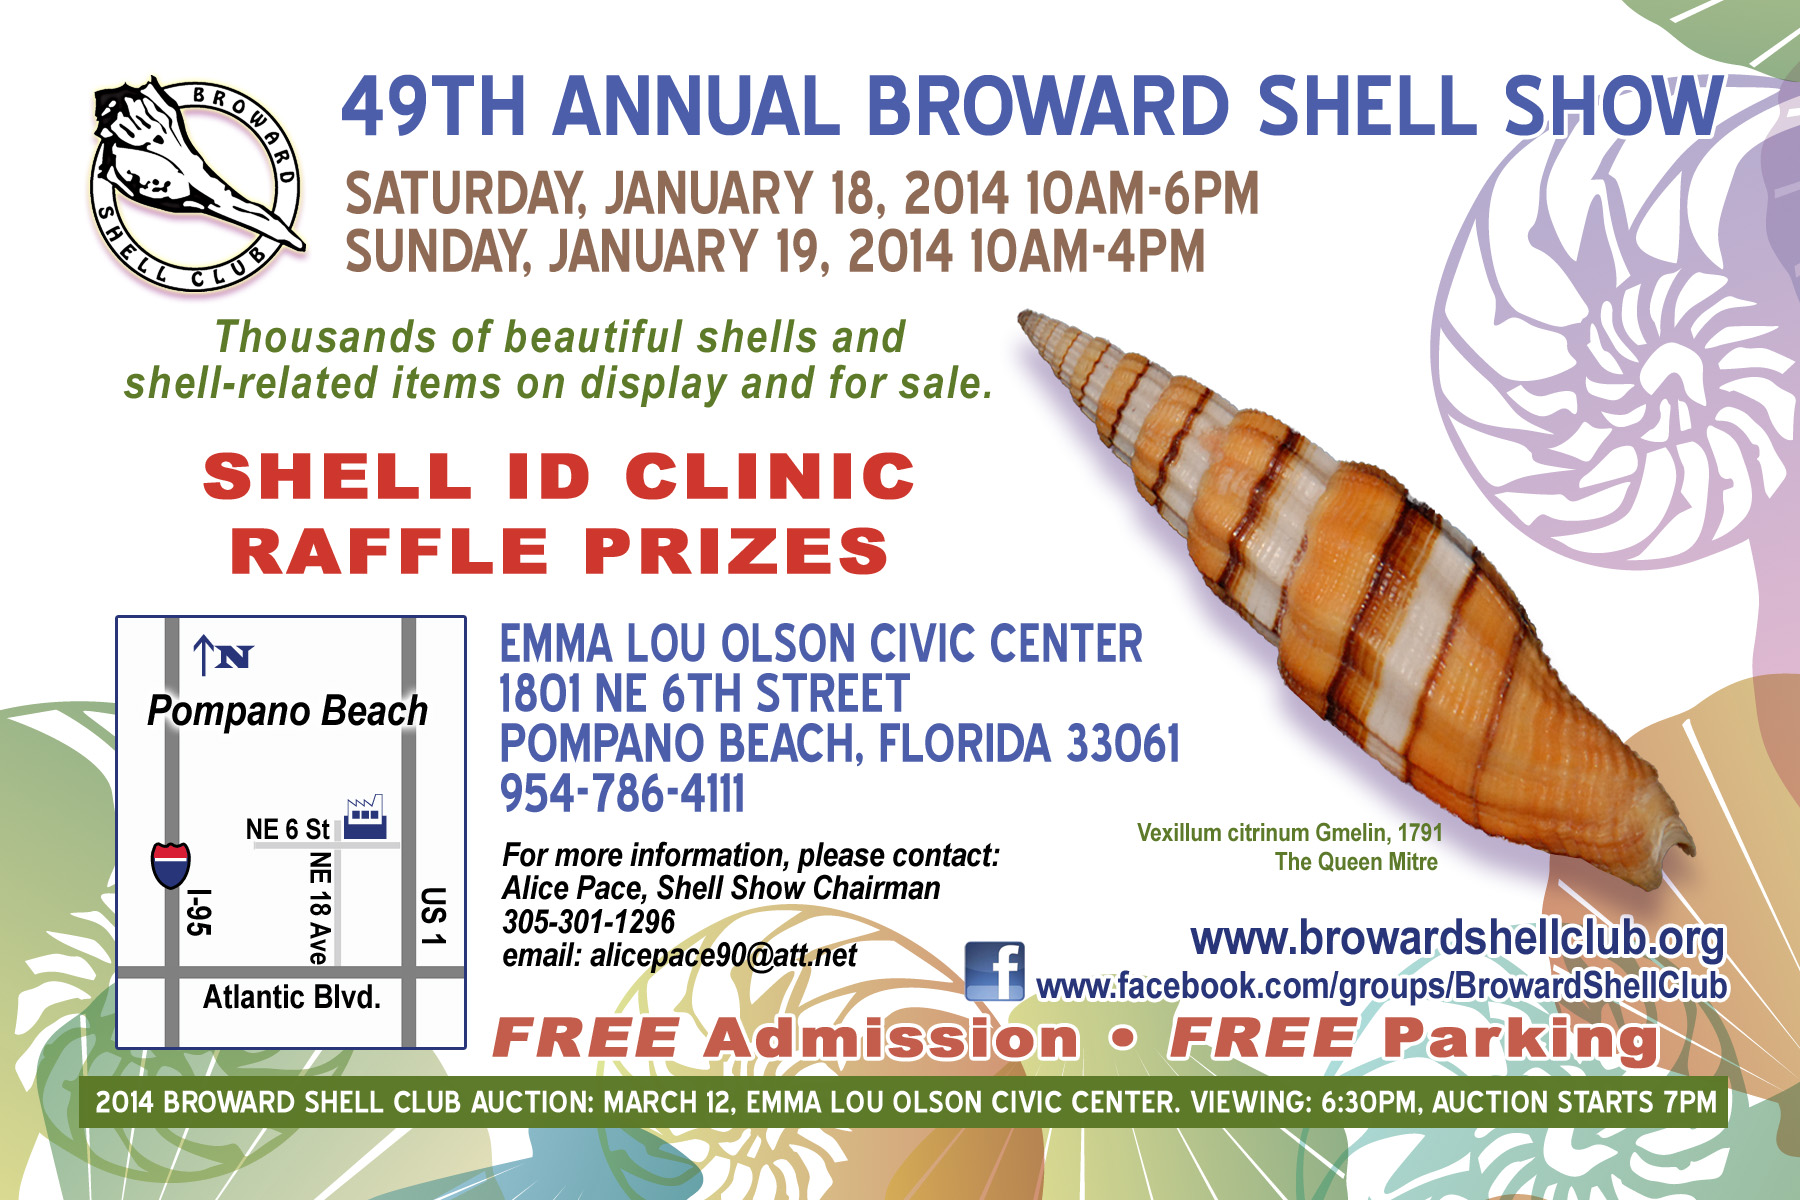 2014 SHELL SHOW SET FOR JANUARY 18 & 19 AT EMMA LOU OLSON CIVIC CENTER